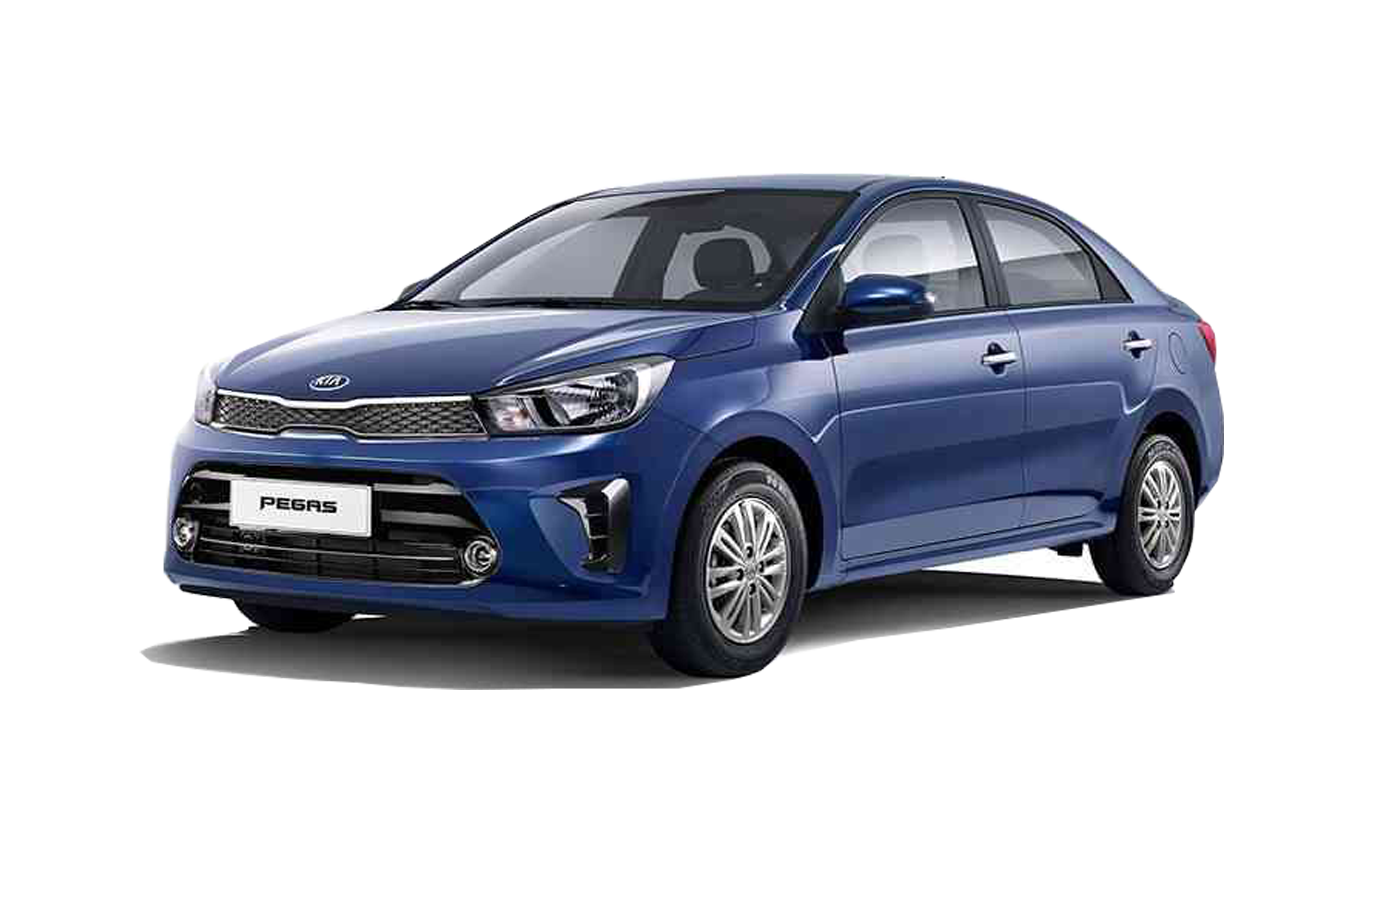 15 A Kia Pegas 2020 Price In Egypt Price And Review